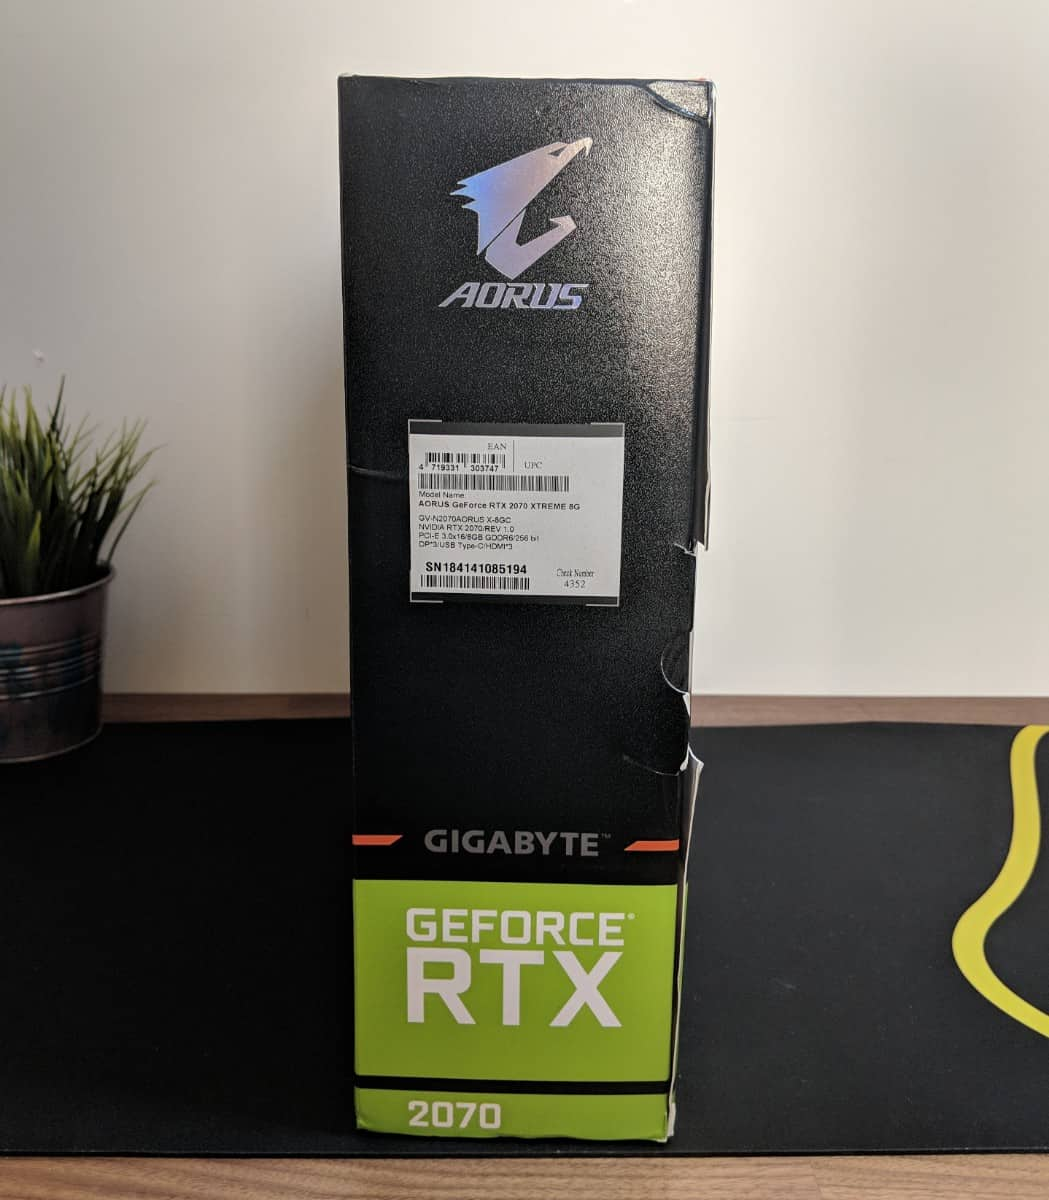 Gigabyte AORUS RTX 2070 Xtreme Review - The Streaming Blog